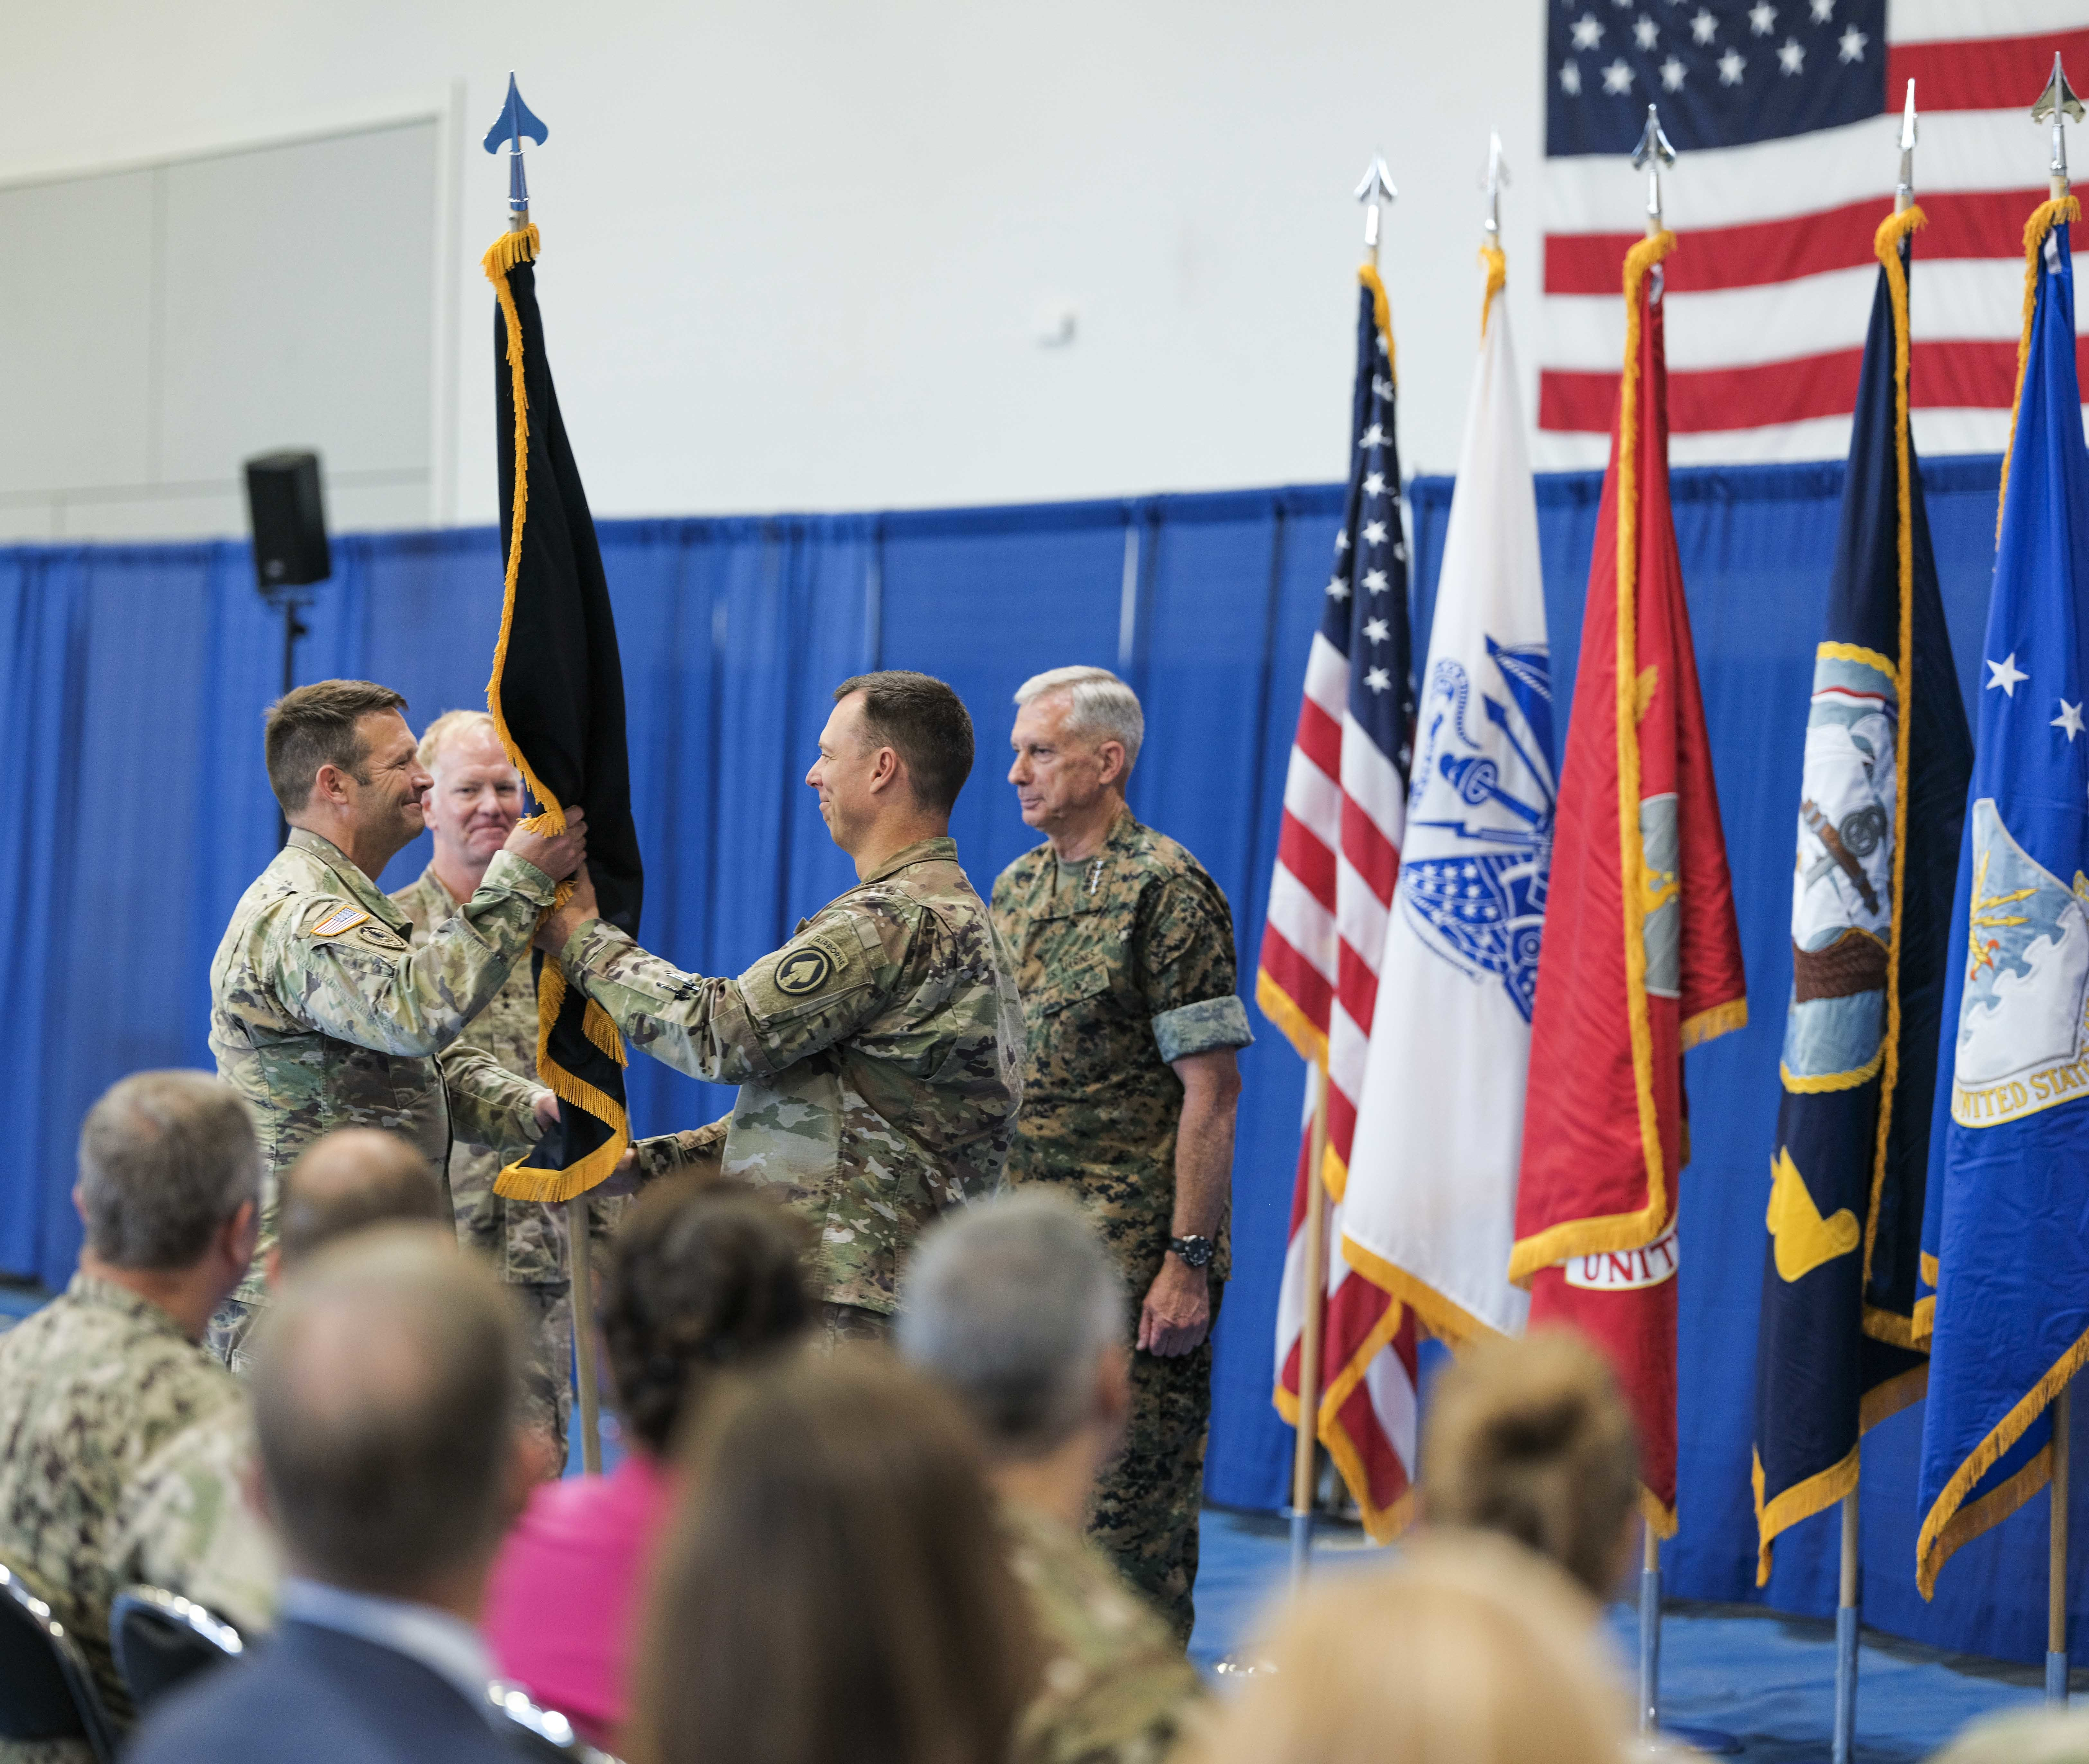 U.S. Air Force Brig. Gen. Dagvin R.M. Anderson hands the SOCAFRICA guidon to Command Sgt. Maj. Lyle H. Marsh during a change of command ceremony for Special Operations Command Africa at Kelley Barracks, Stuttgart, Germany, June 28, 2019. Special Operations Command Africa supports U.S. Africa Command by counter violent extremist organizations, building the military capacity of key partners in Africa and protecting U.S. personnel and facilities. (U.S. Army photo by Sgt. 1st Class Daniel Love/Released)